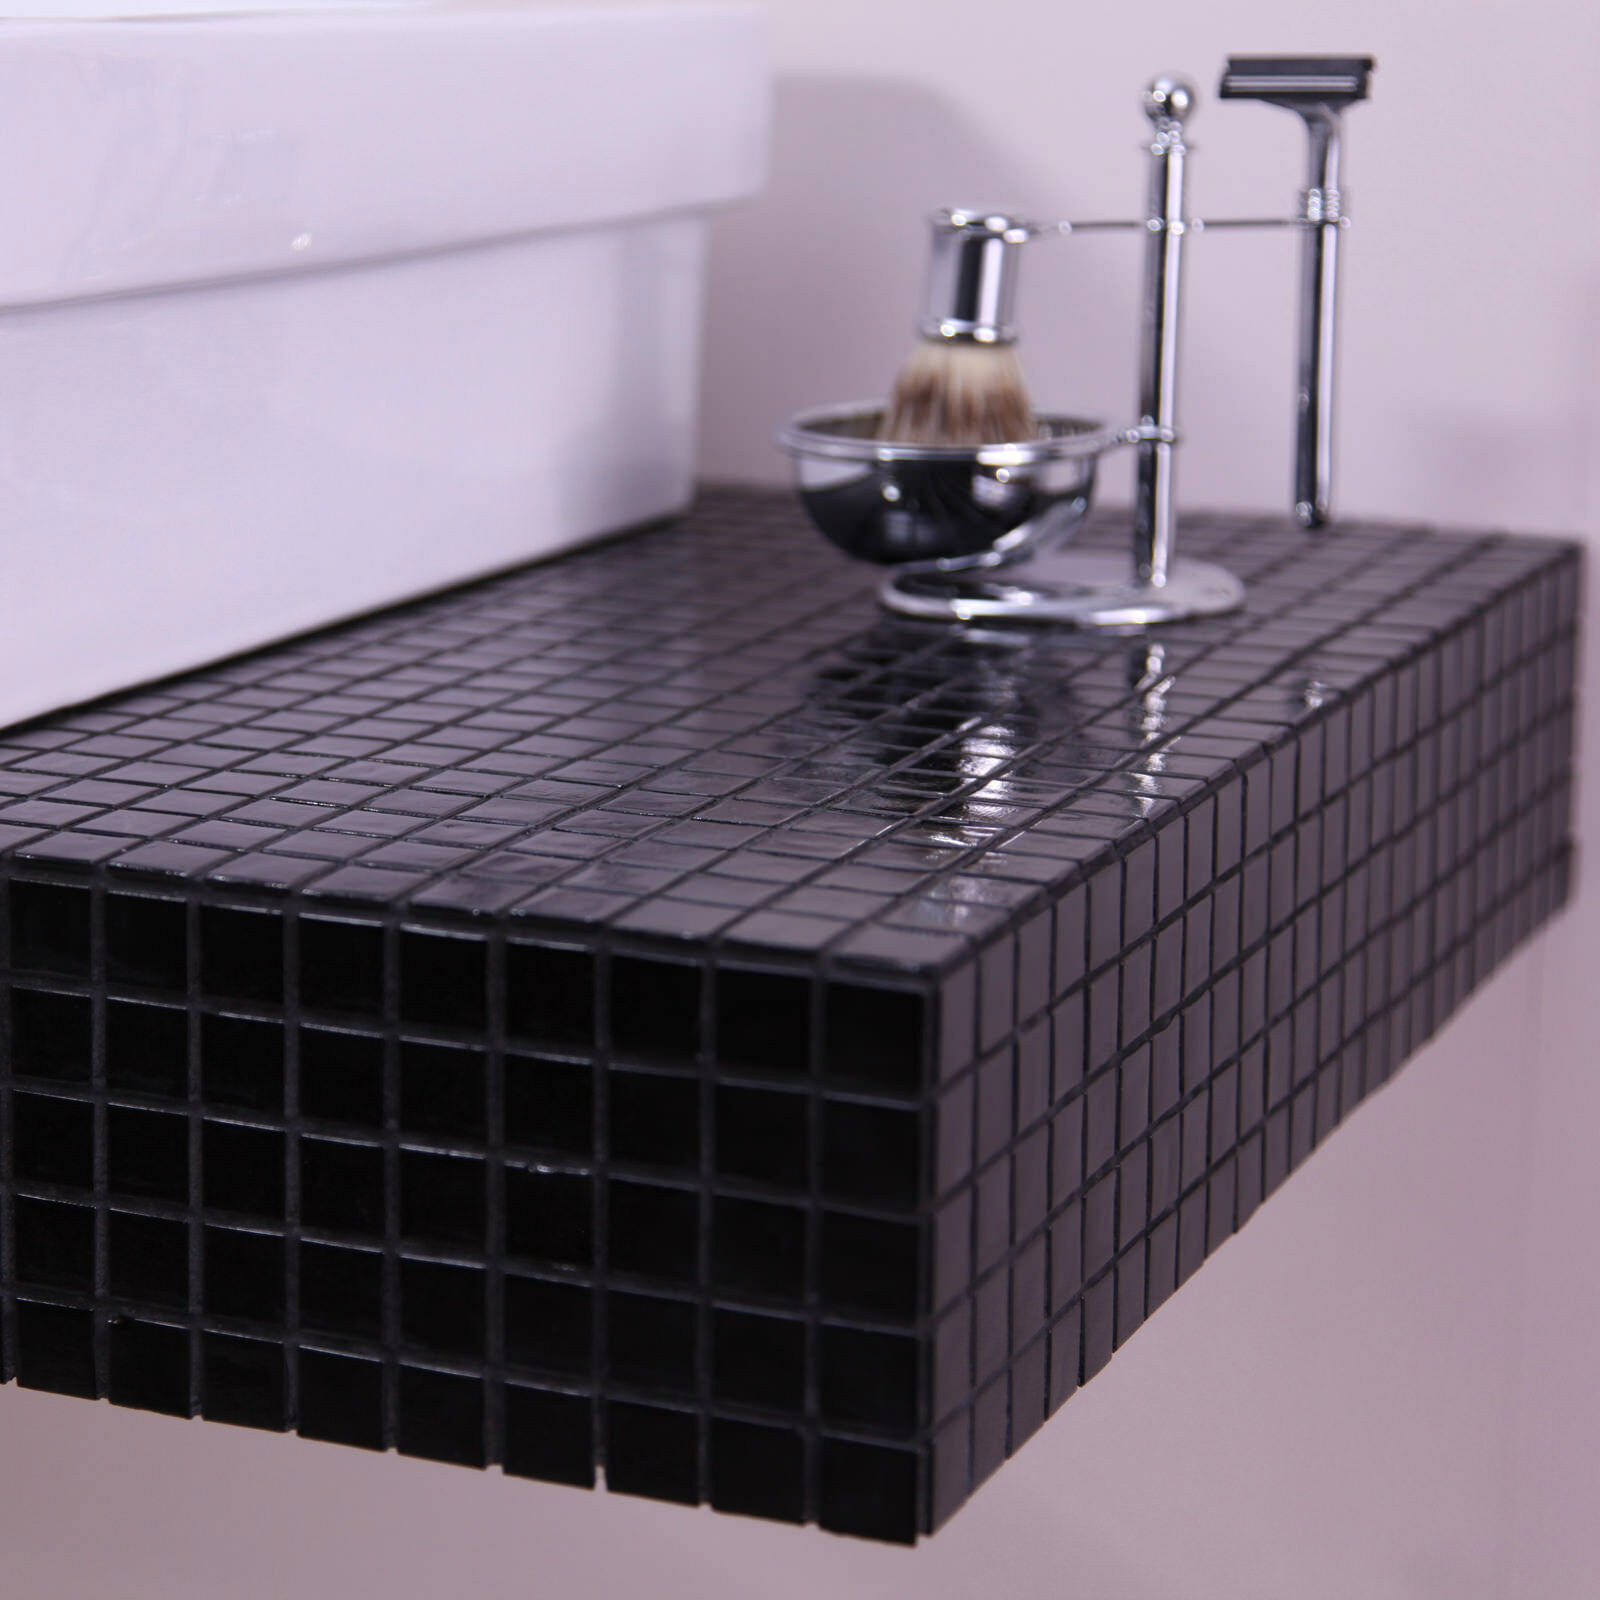 Black Gloss Floor Tiles. Black Gloss Bathroom Wall Tiles   Rukinet com